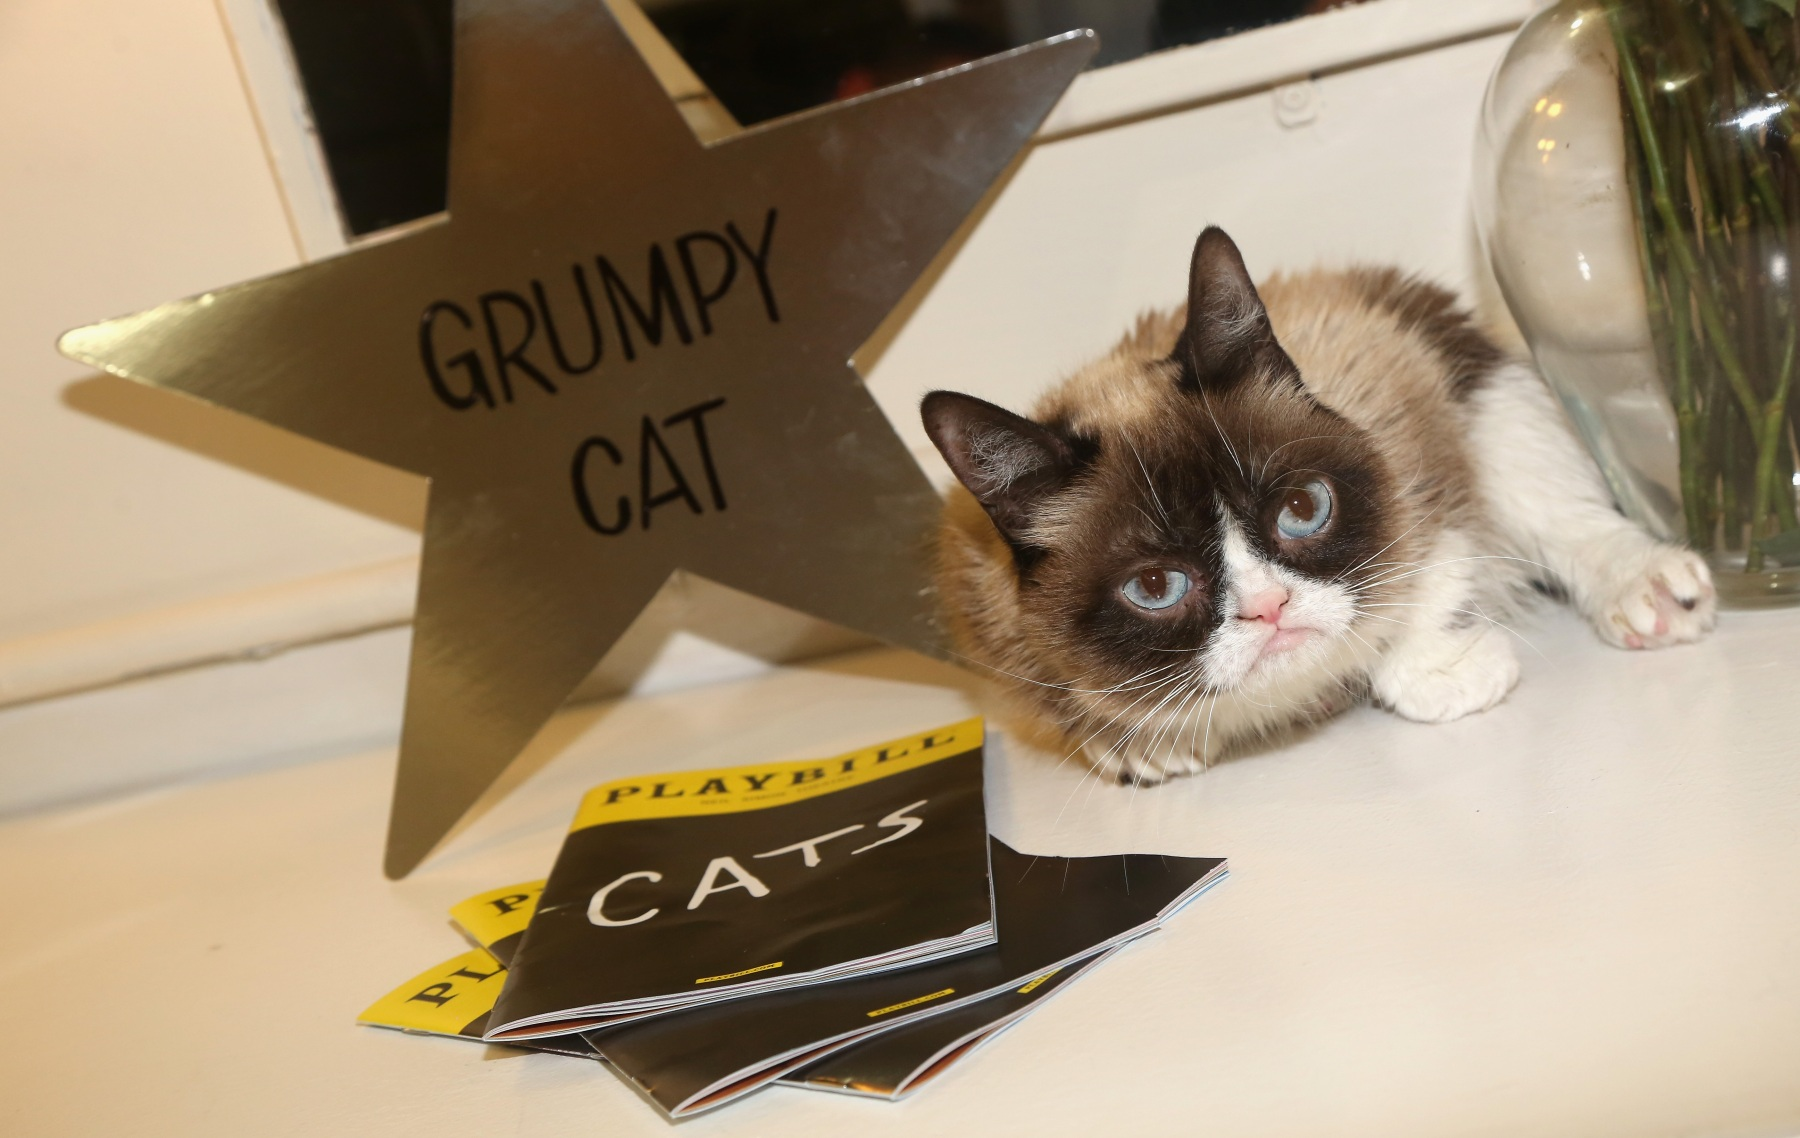 """NEW YORK, NY - SEPTEMBER 30:  (EXCLUSIVE COVERAGE) Grumpy Cat relaxes in her dressing room as she makes her broadway debut in """"Cats"""" on Broadway at The Neil Simon Theatre on September 30, 2016 in New York City.  (Photo by Bruce Glikas/FilmMagic)"""